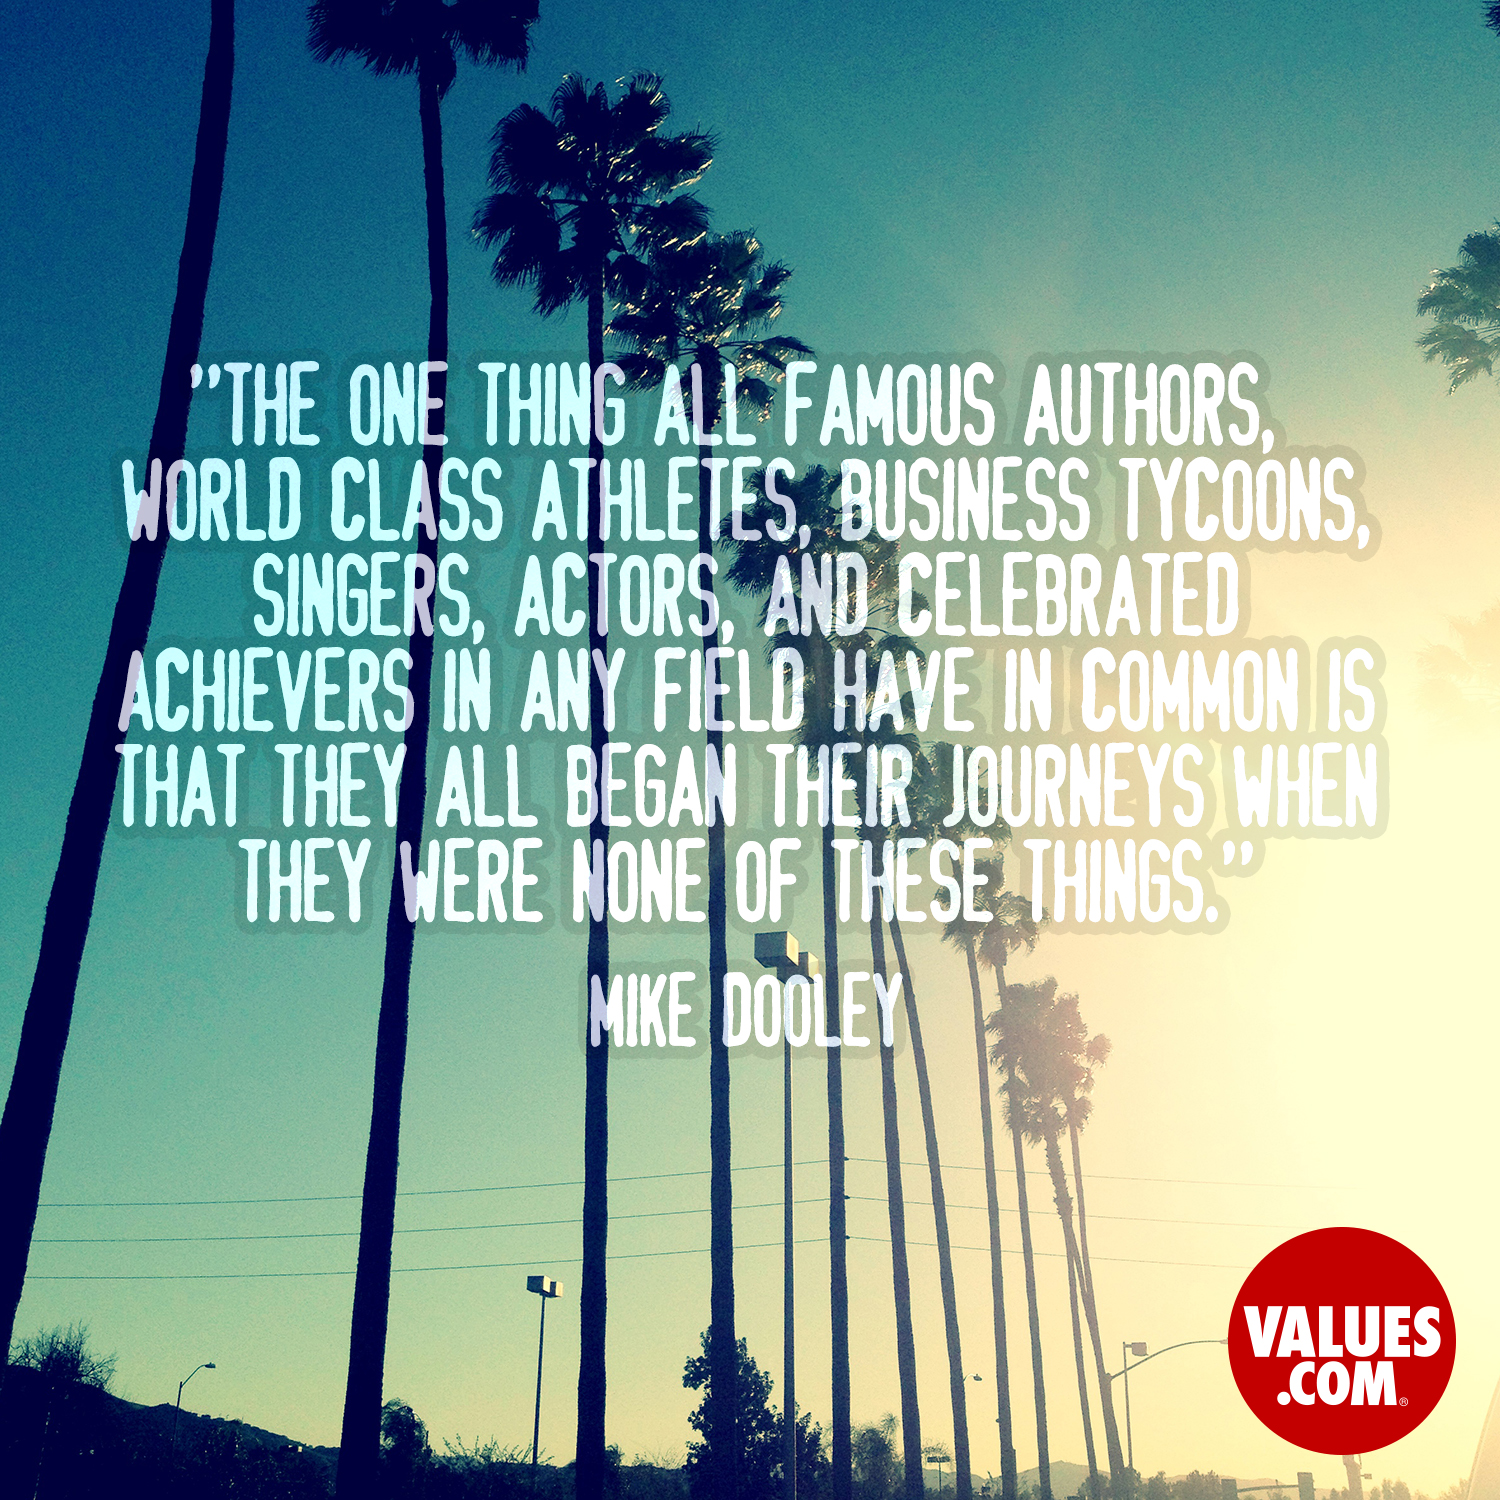 The one thing all famous authors, world class athletes, business tycoons, singers, actors, and celebrated achievers in any field have in common is that they all began their journeys when they were none of these things. —Mike Dooley